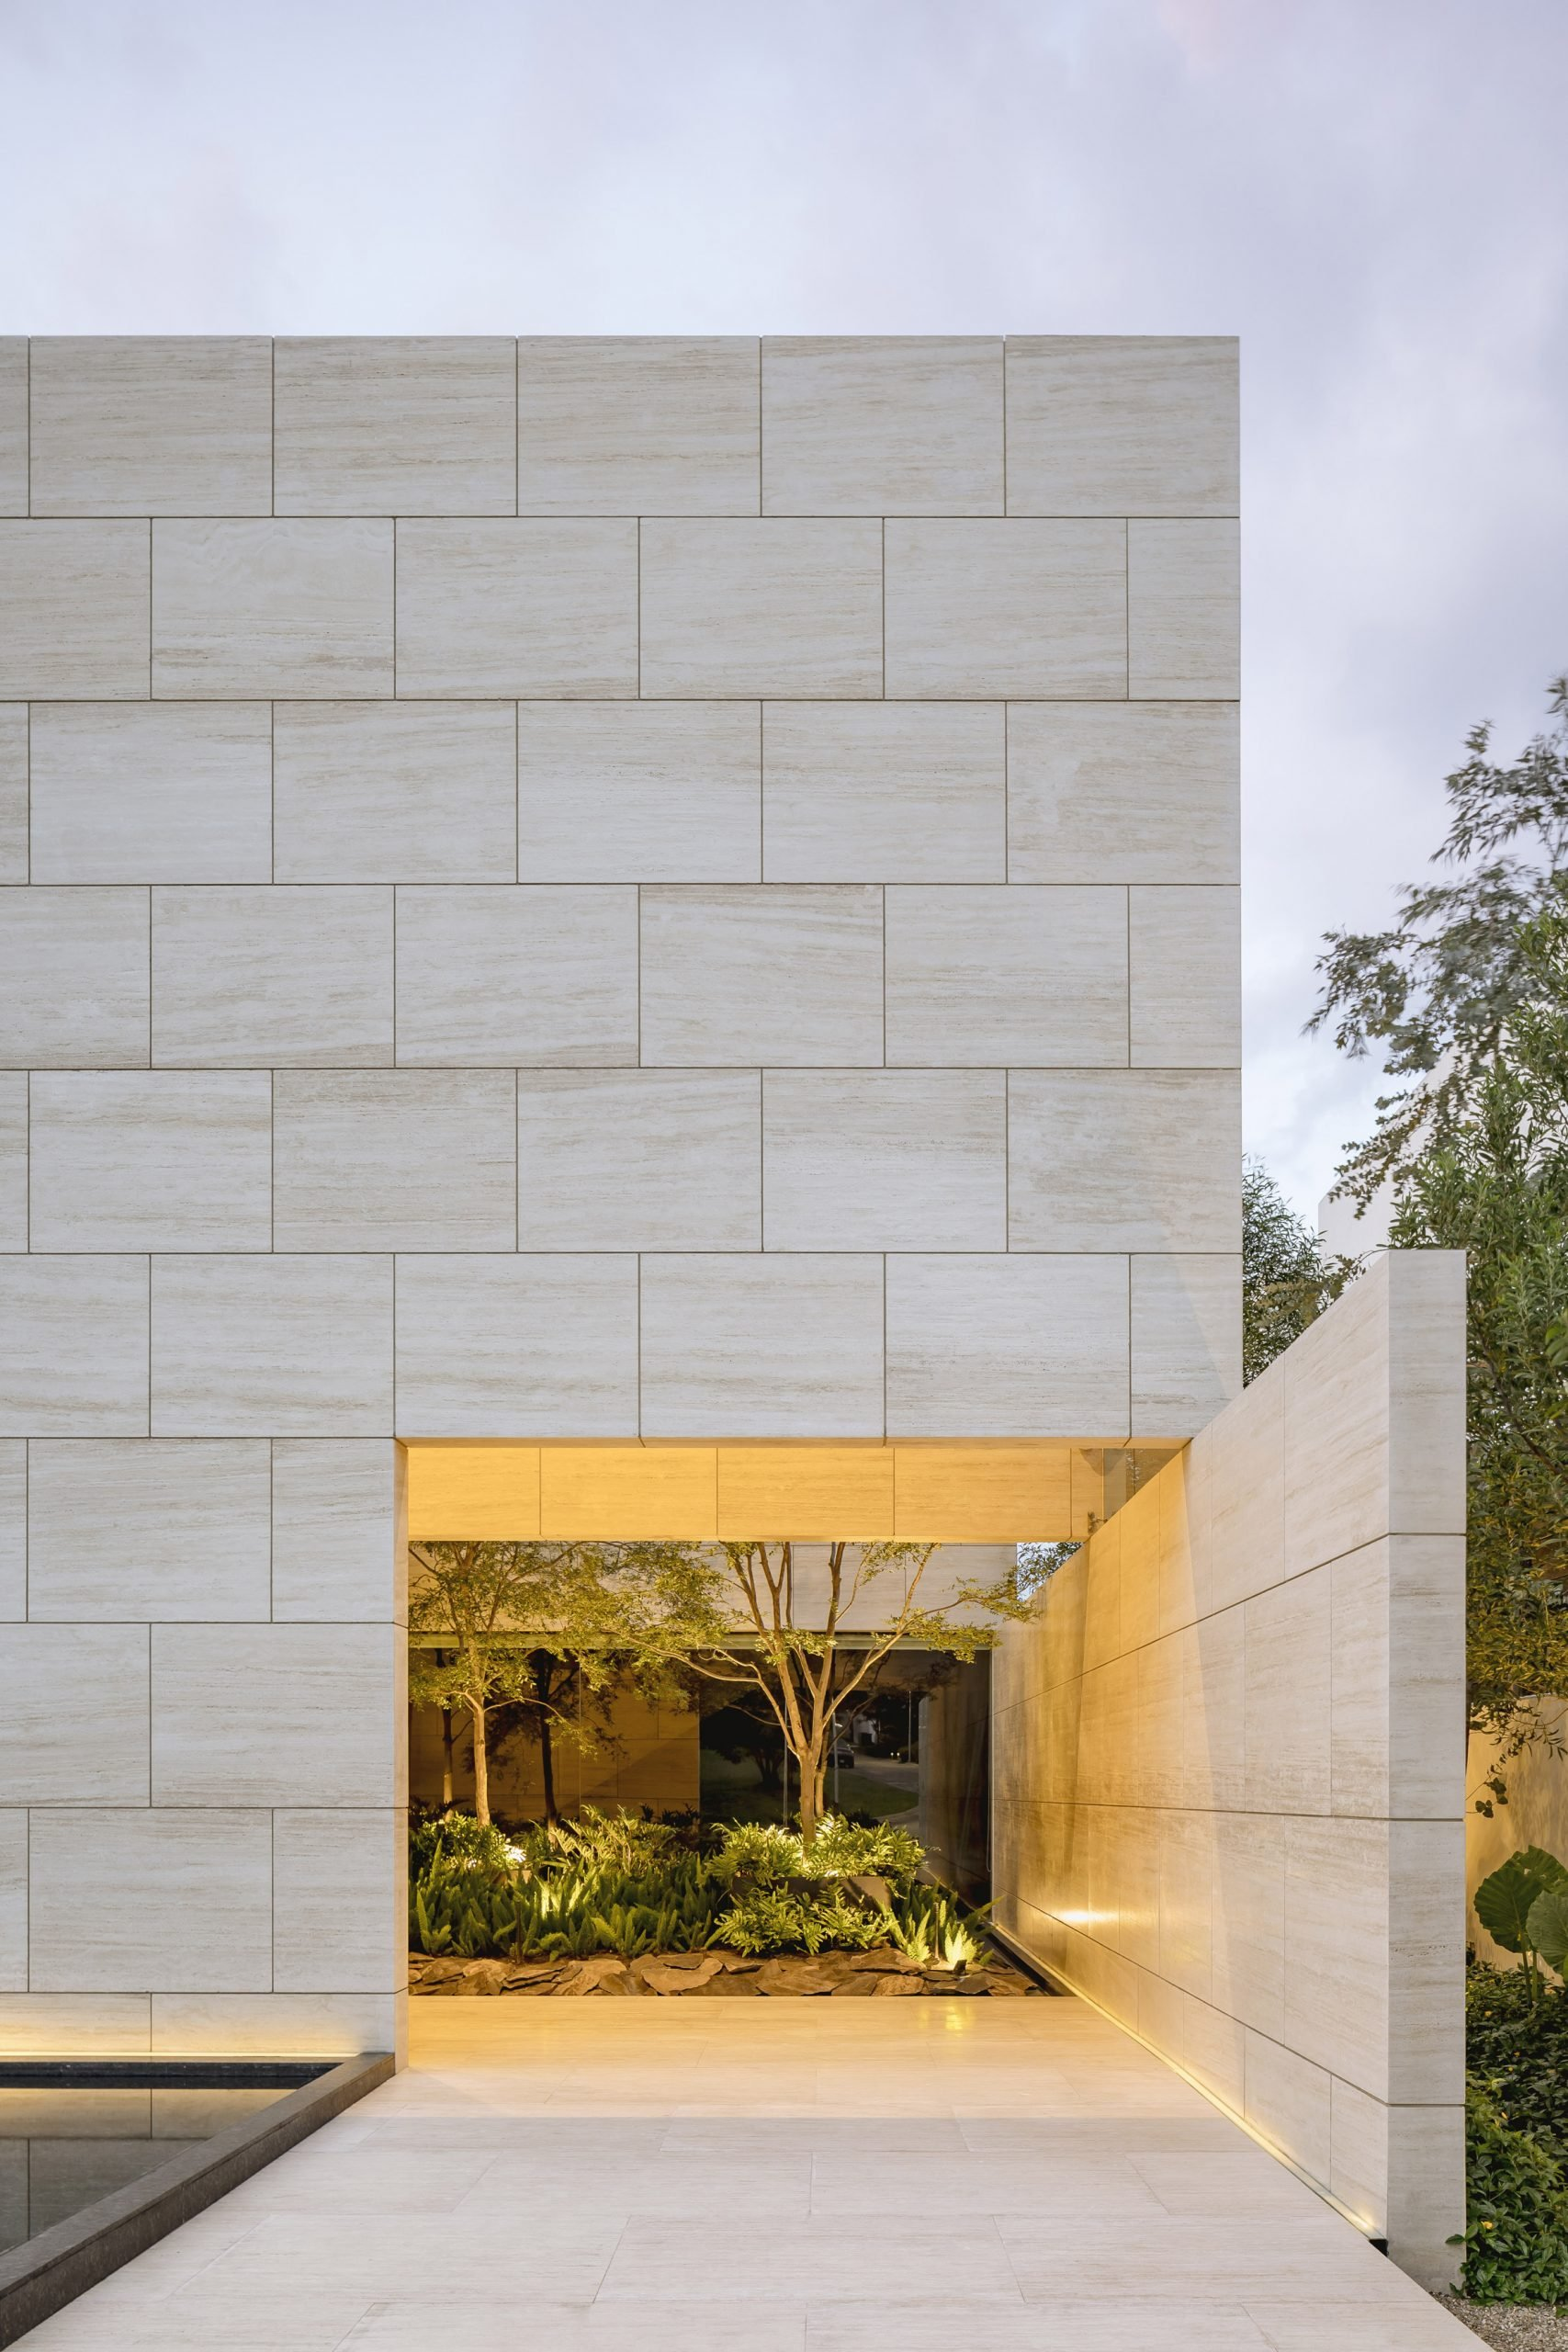 Exterior of Casa ZTG by 1540 Arquitectura